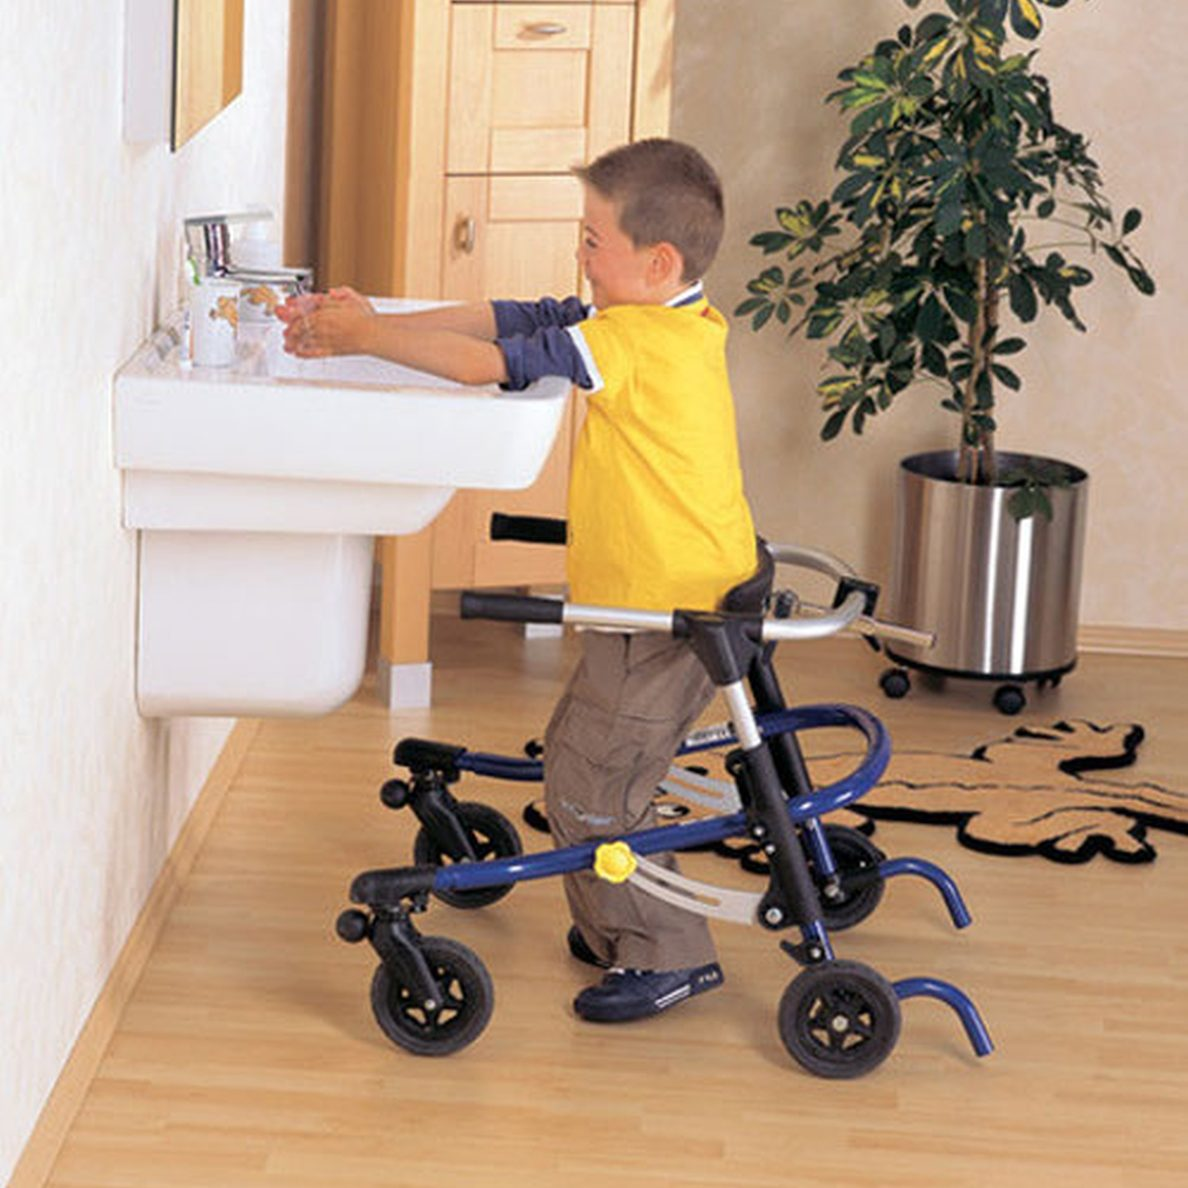 Orthotics For Children With Cerebral Palsy In Tucson AZ